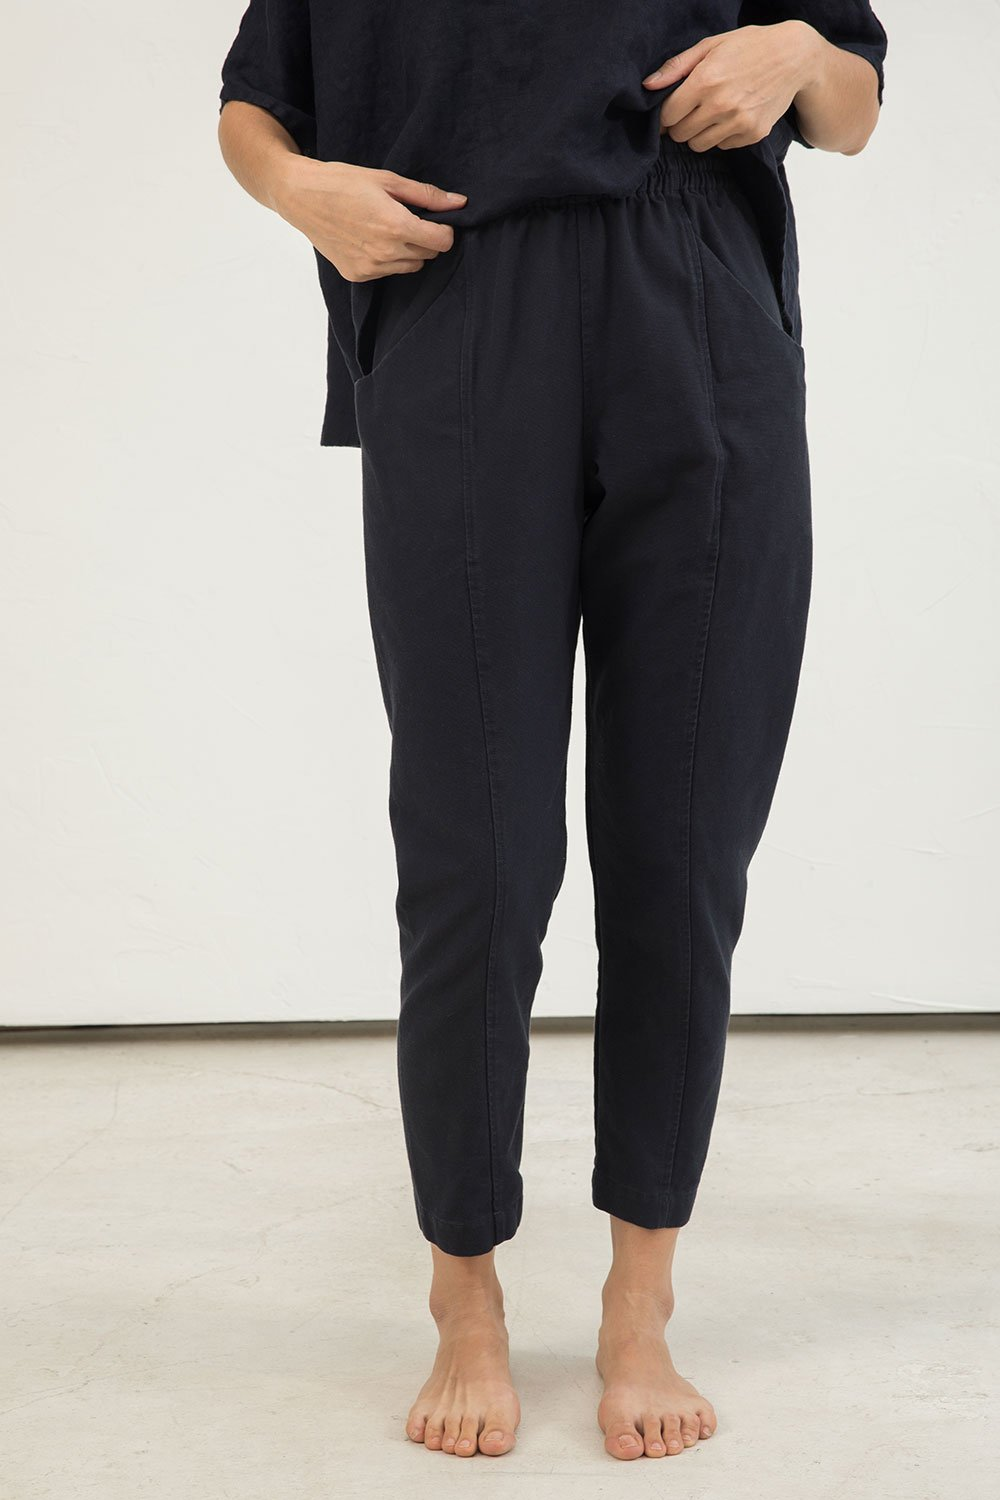 Clyde Work Pant in Cotton Canvas Navy - Lisa-4 Regular